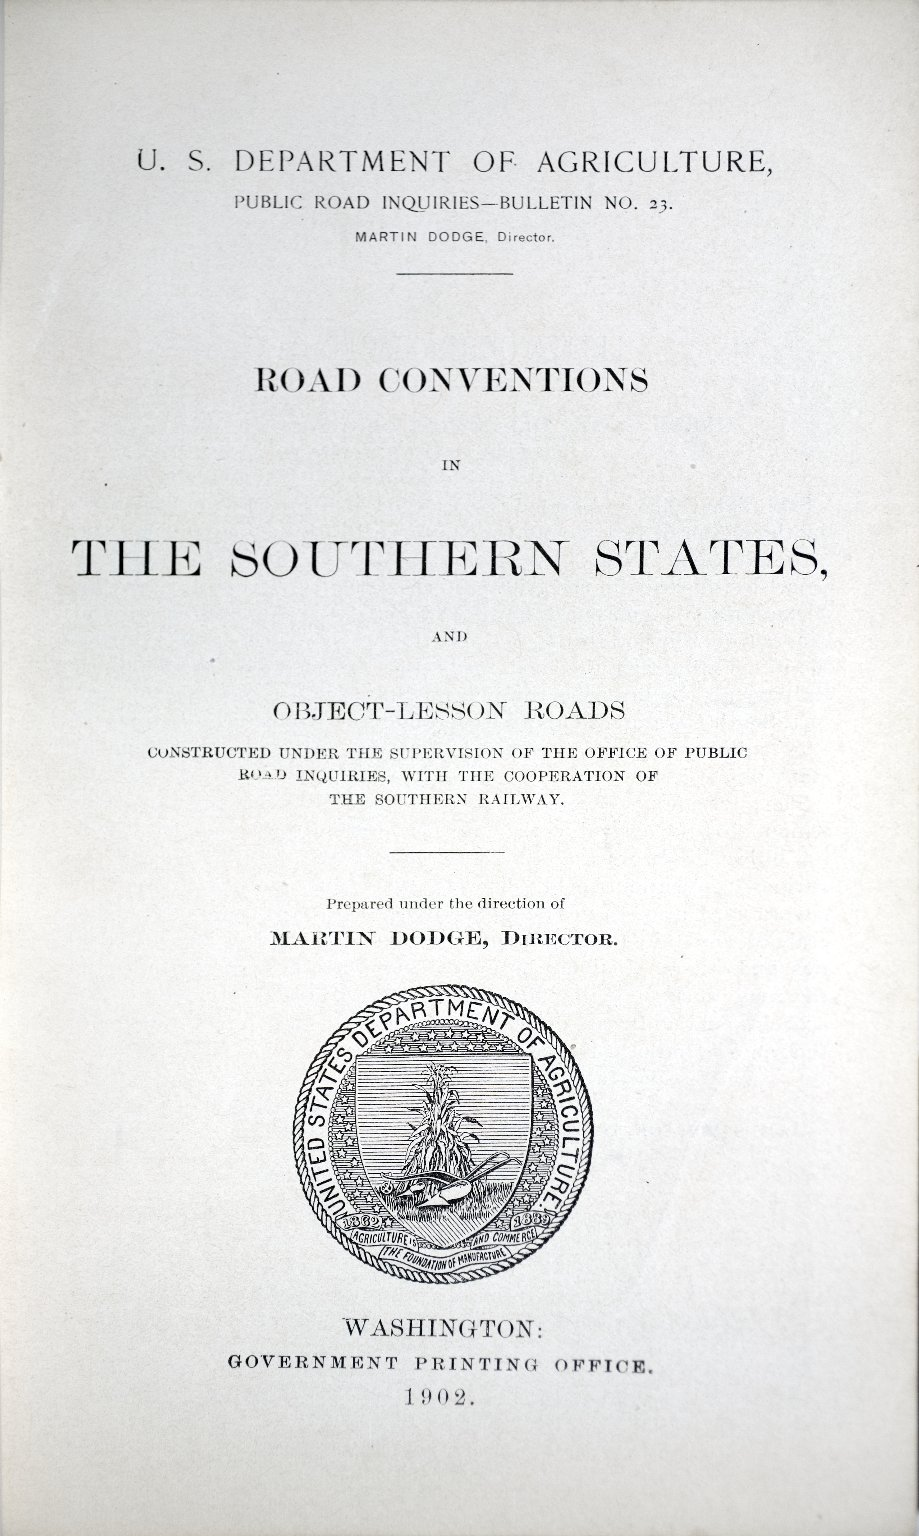 Public Road Inquiries-Bulletin No. 23, Road Conventions in the Southern States and Object Lesson Roads constructed under the supervision of the Office of Public Road Inquiries, with the cooperation of the Southern Railway, title page